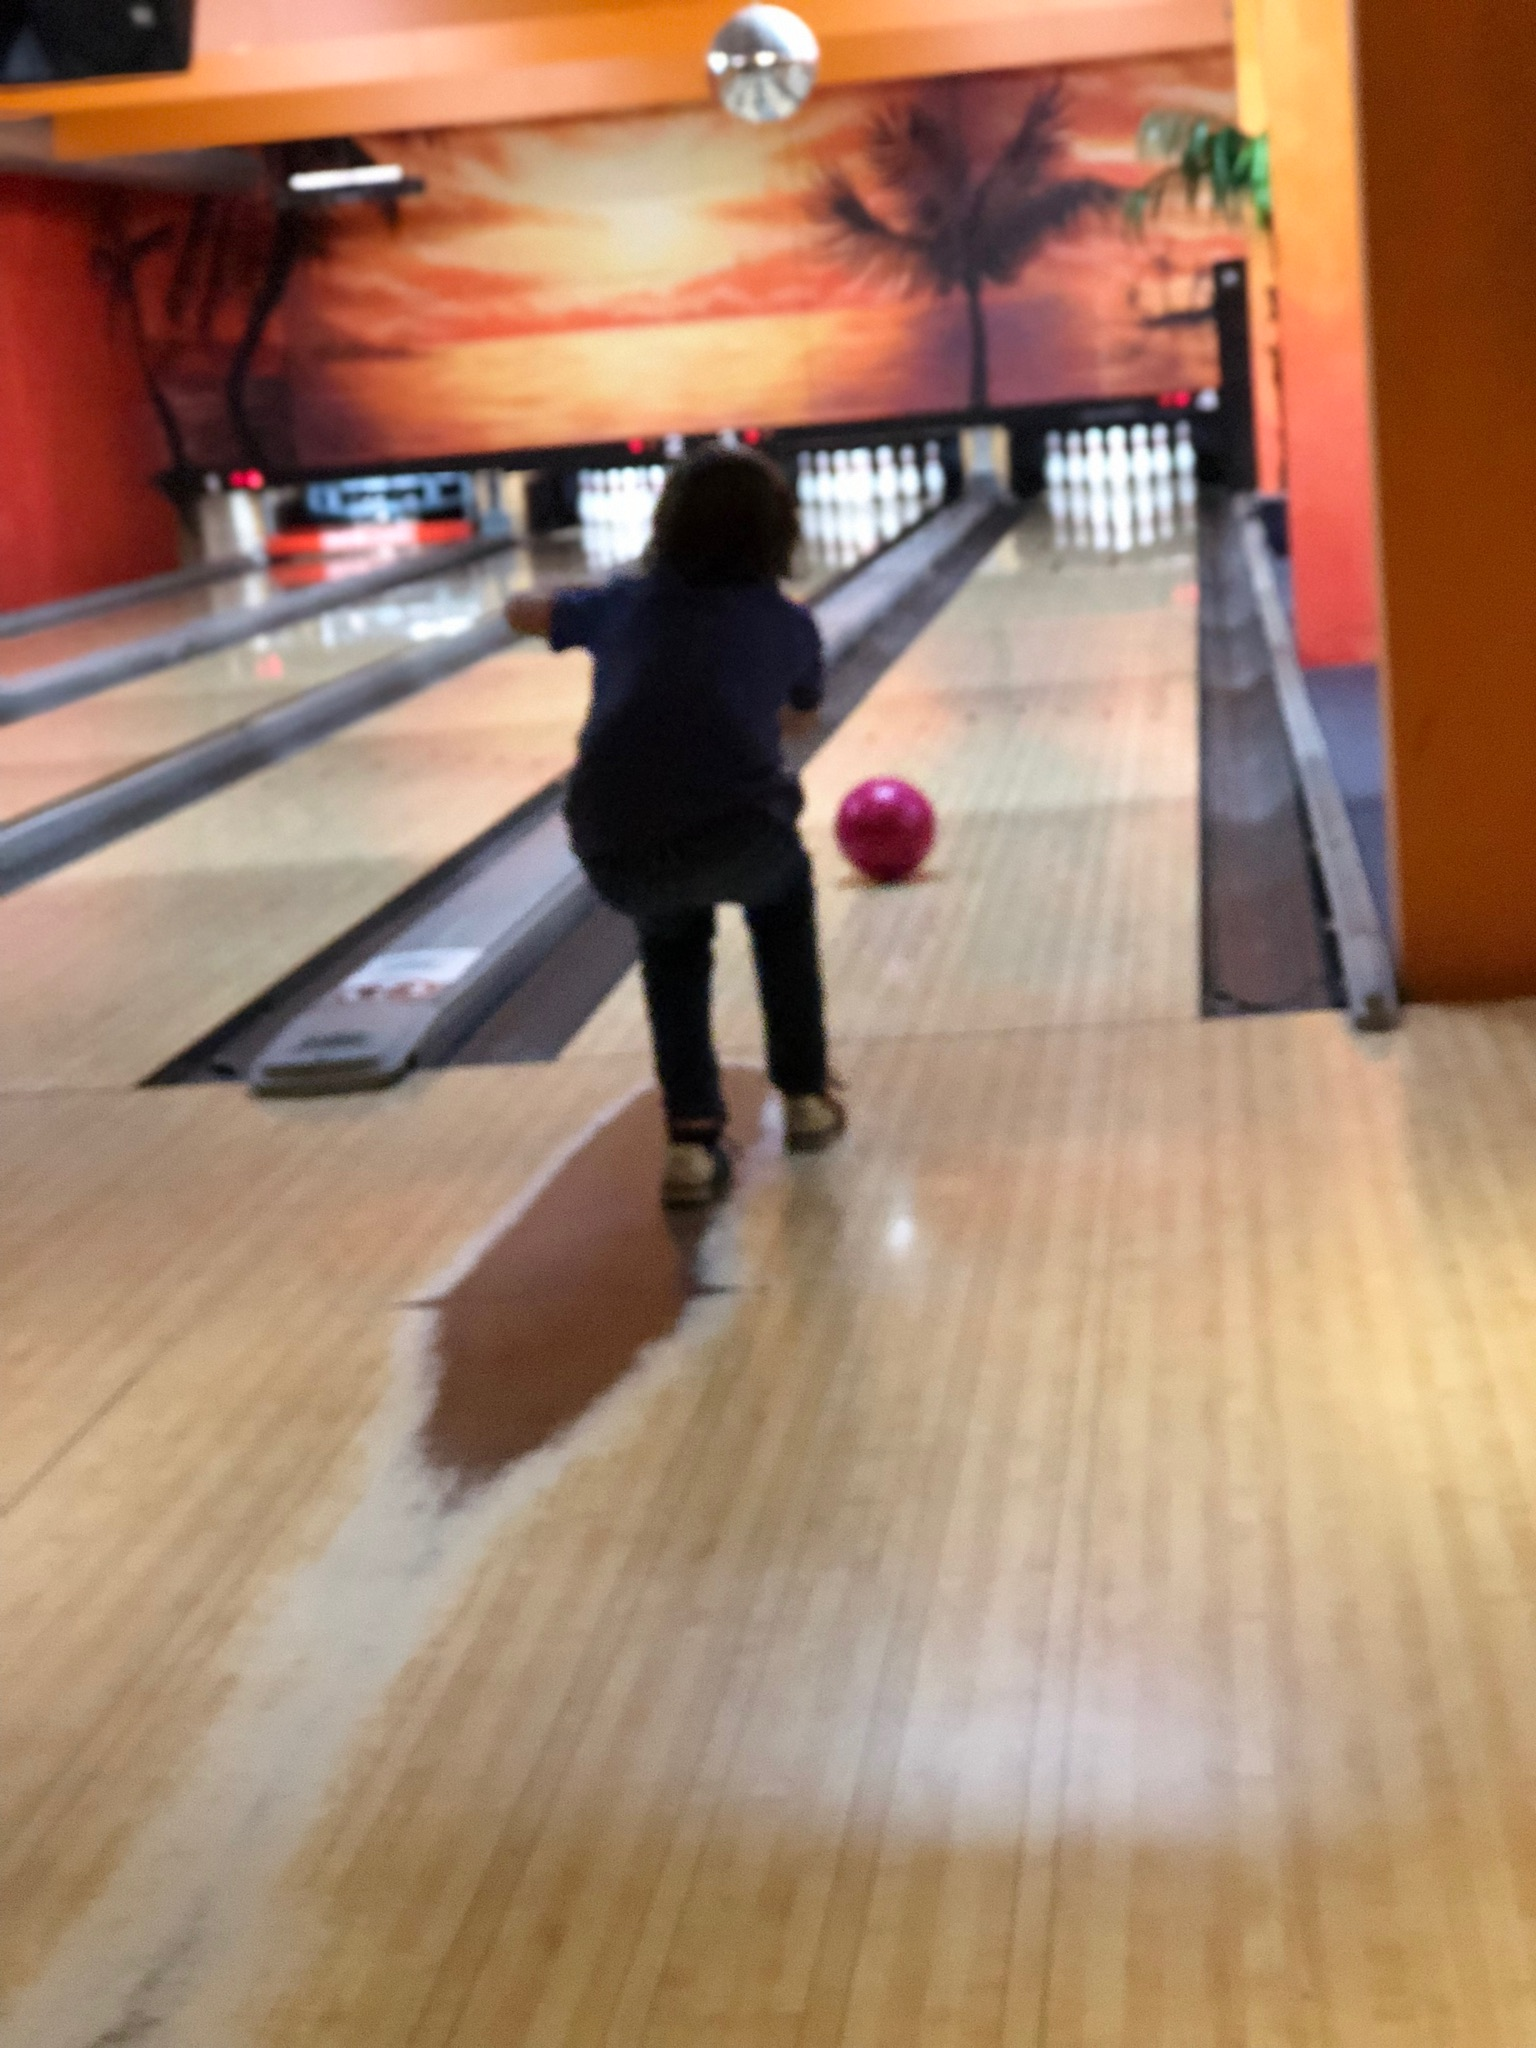 So what I did for mmyyyy birthday wasss sort of good but we did bowling 🎳.and, now,I know that I'm not good at bowling at all😨😥 .i wish I was good at bowling. the ball is way to heavy for me .